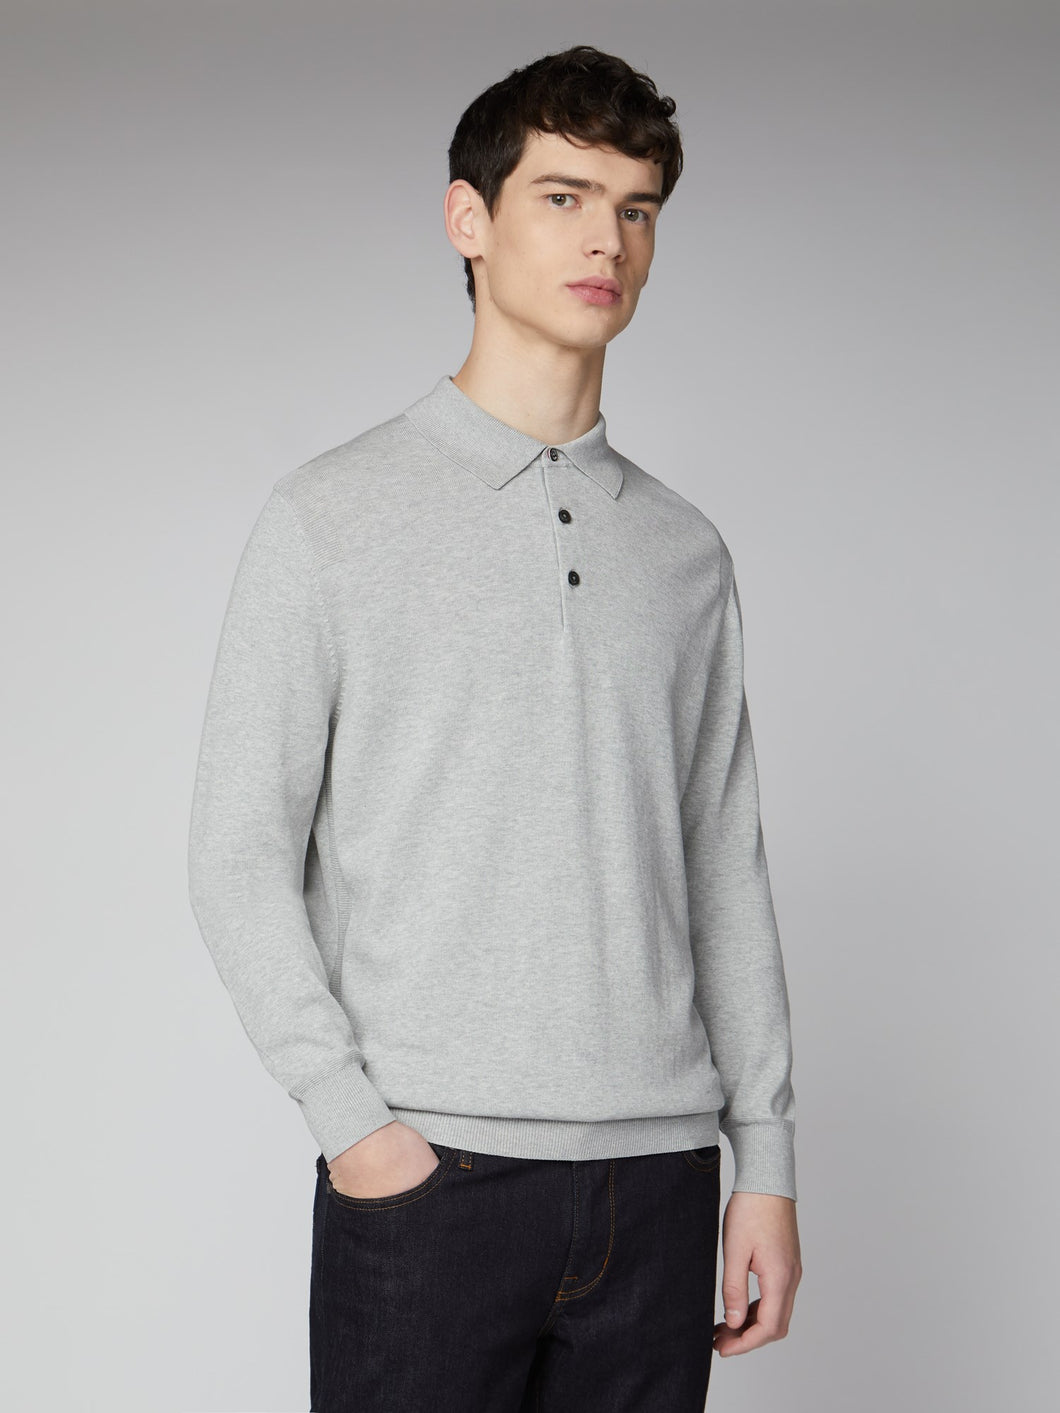 Signature Cotton Long Sleeve Sweater